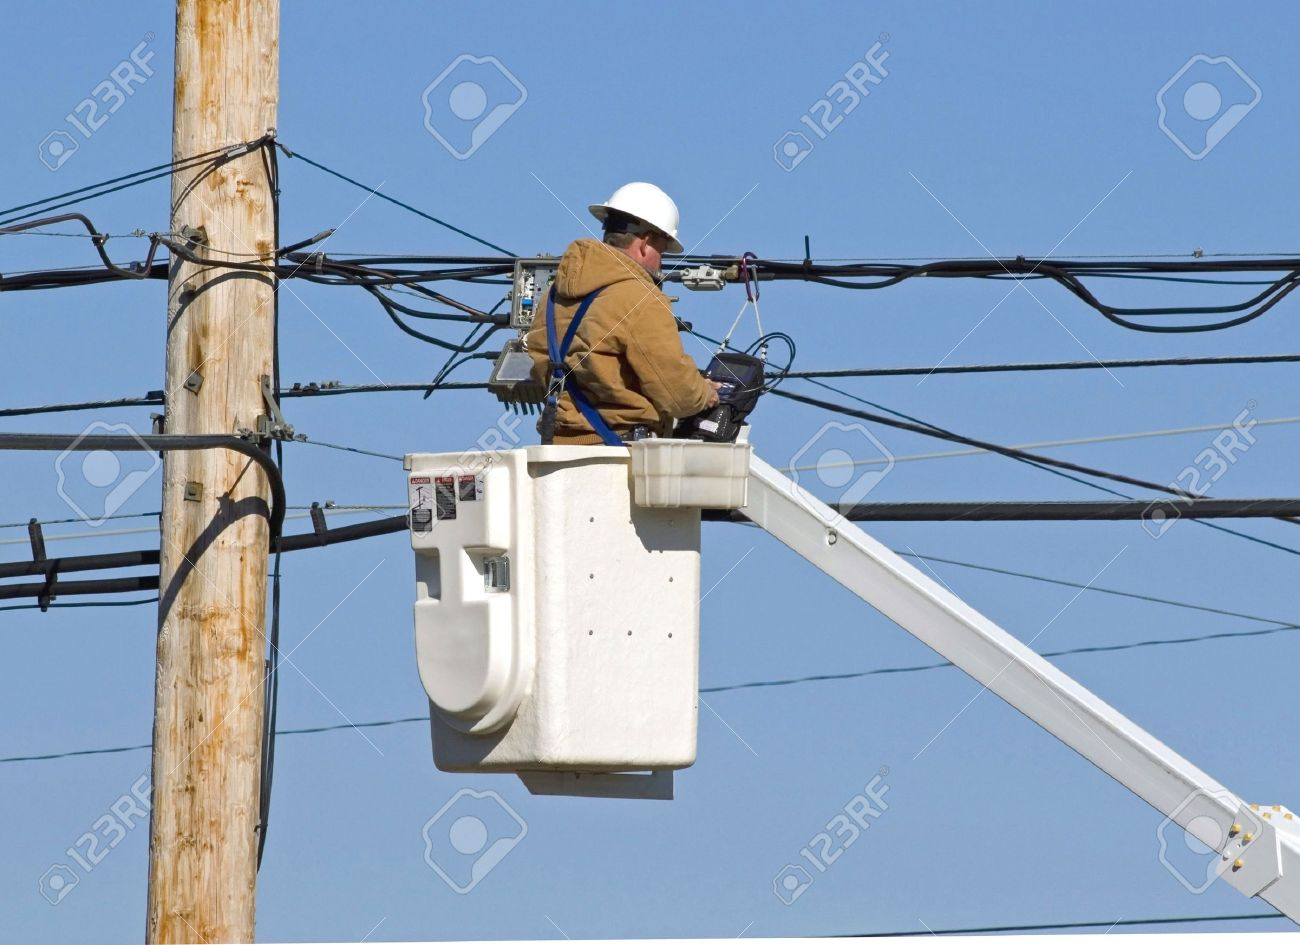 Cable Technician Working On Communication Lines By Using Bucket ...